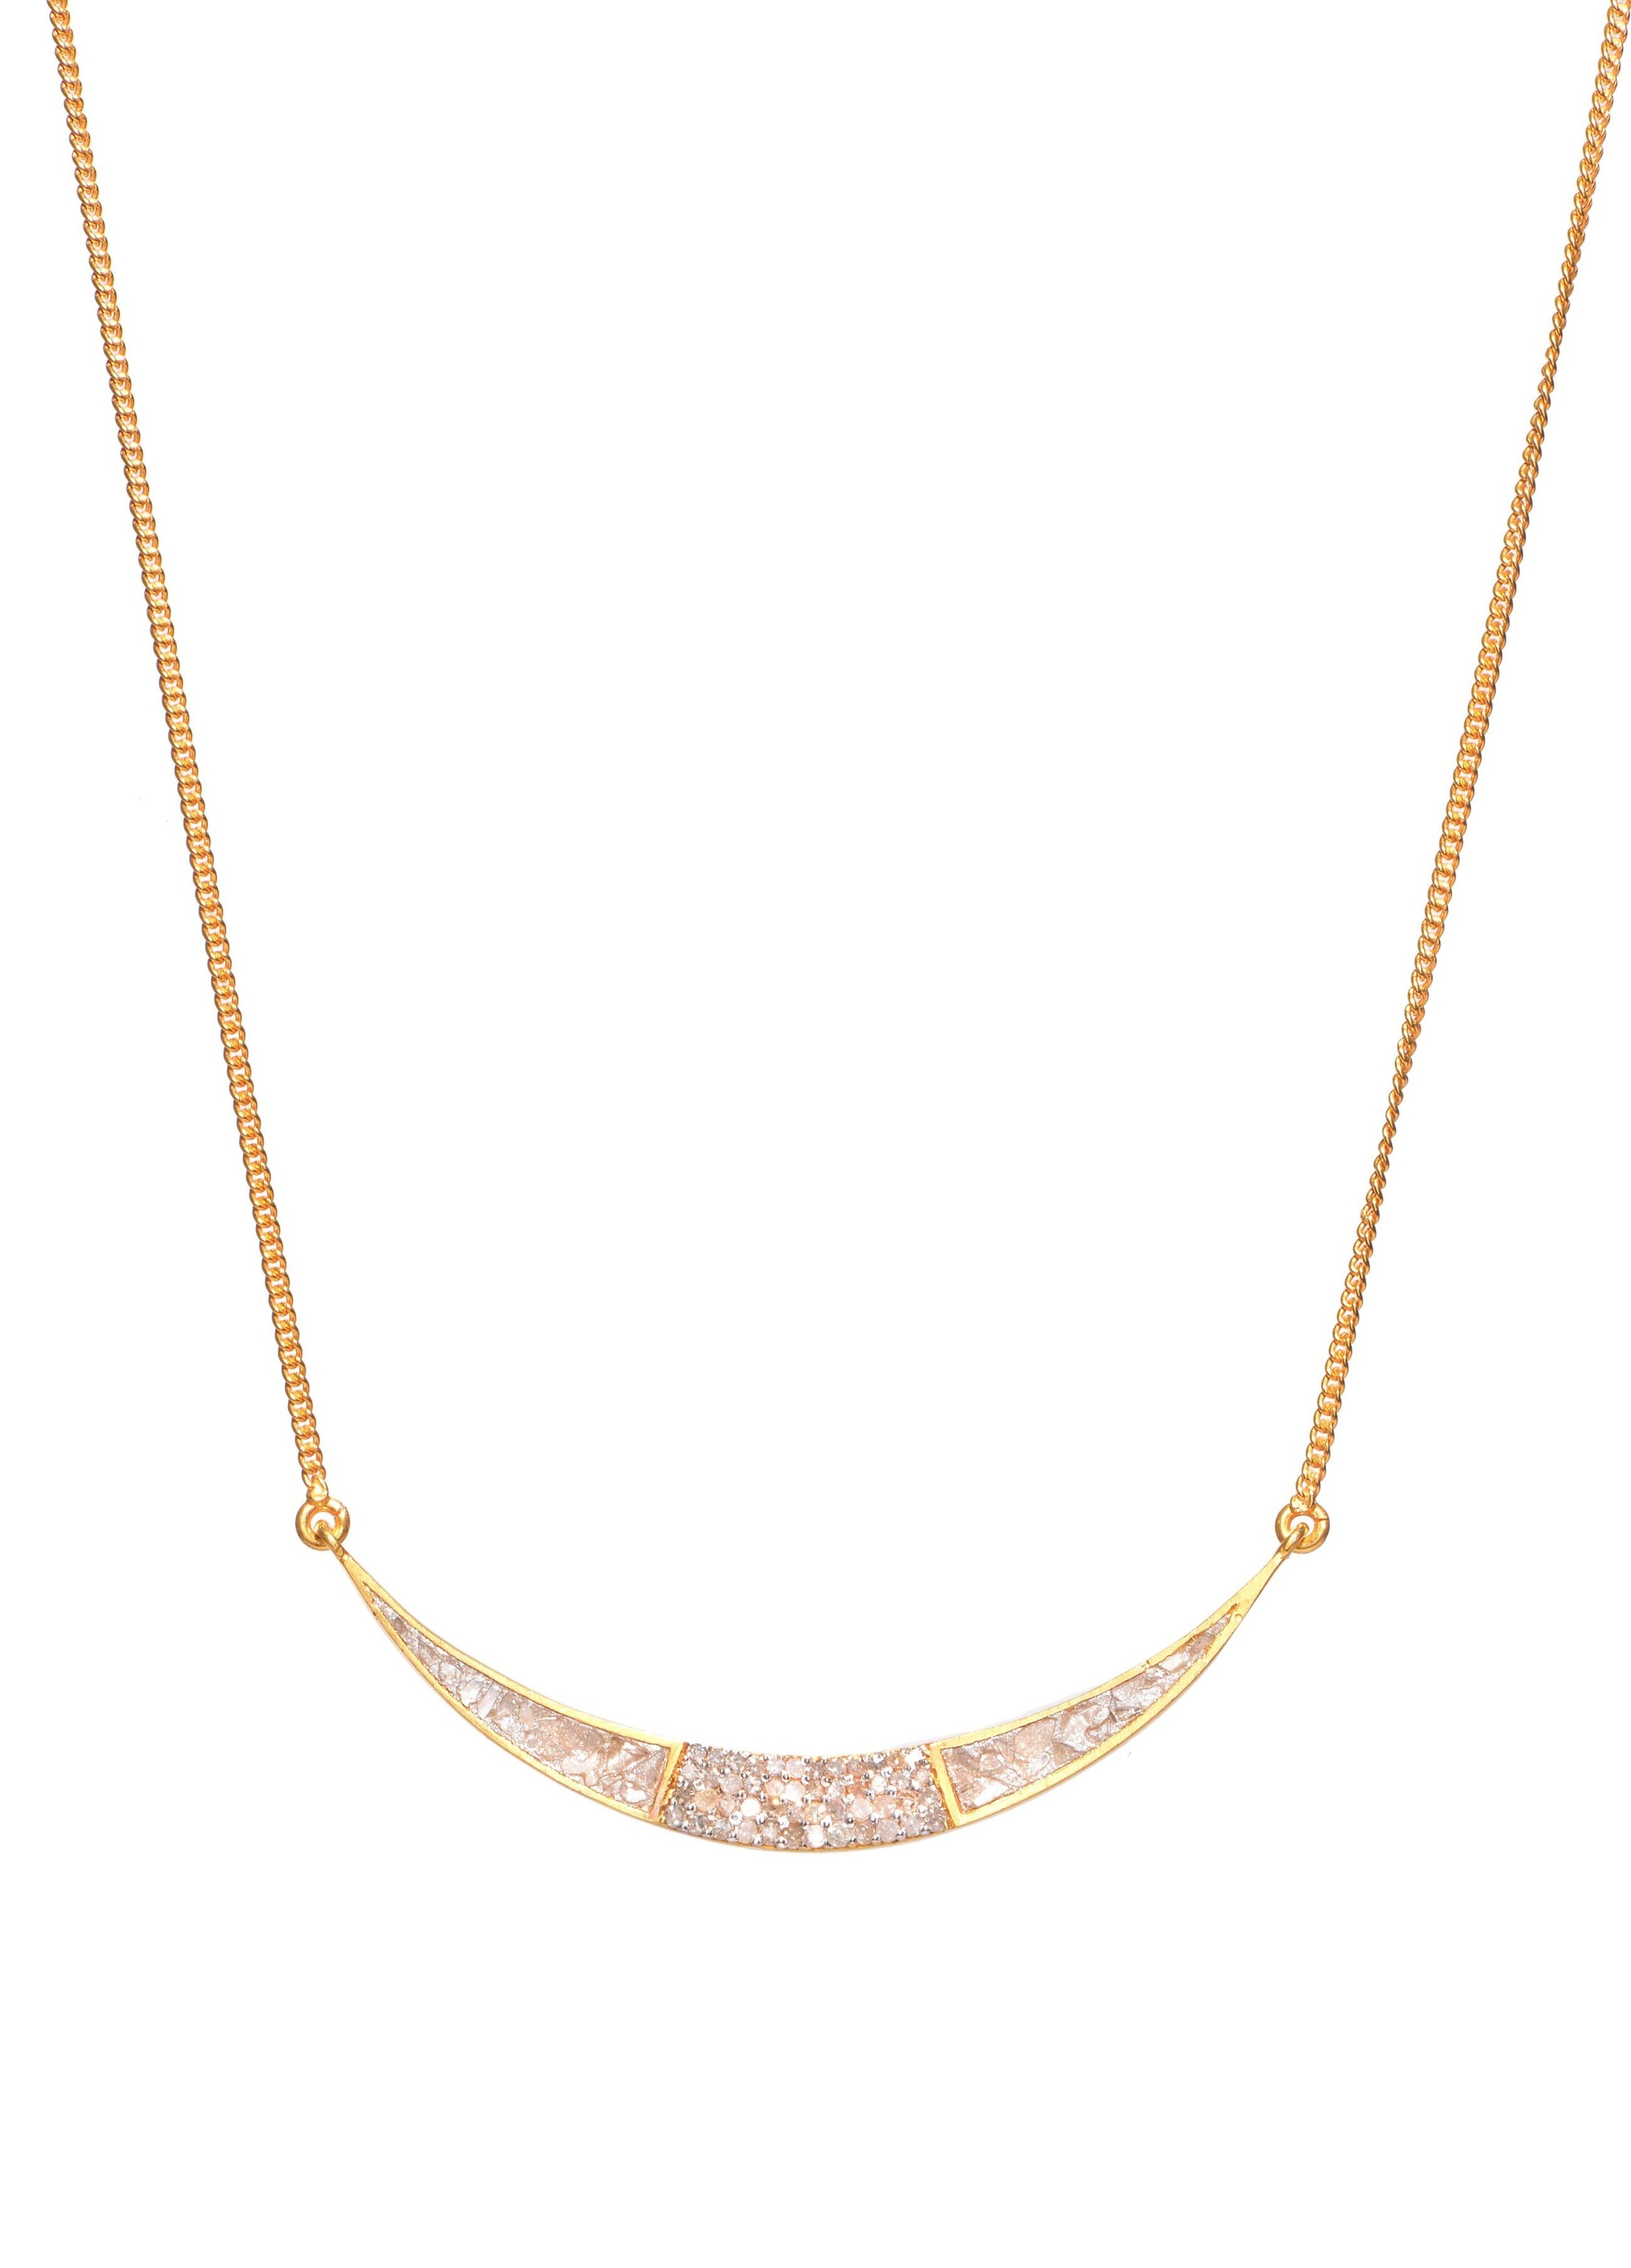 gold diamond crescent moon shaped pendant necklace